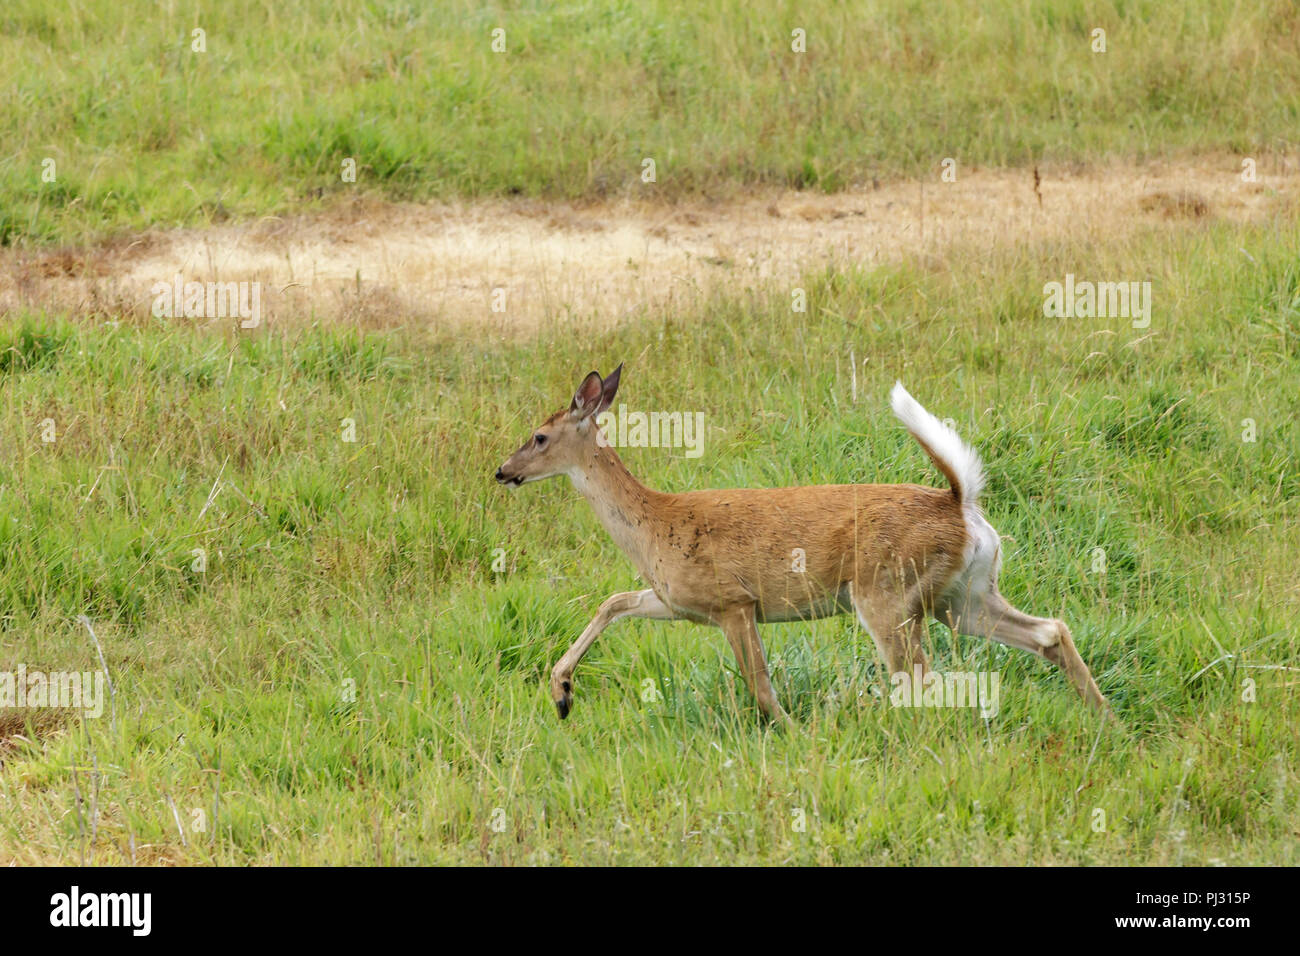 White tailed deer runs in a grassy field near Hauser, Idaho. - Stock Image